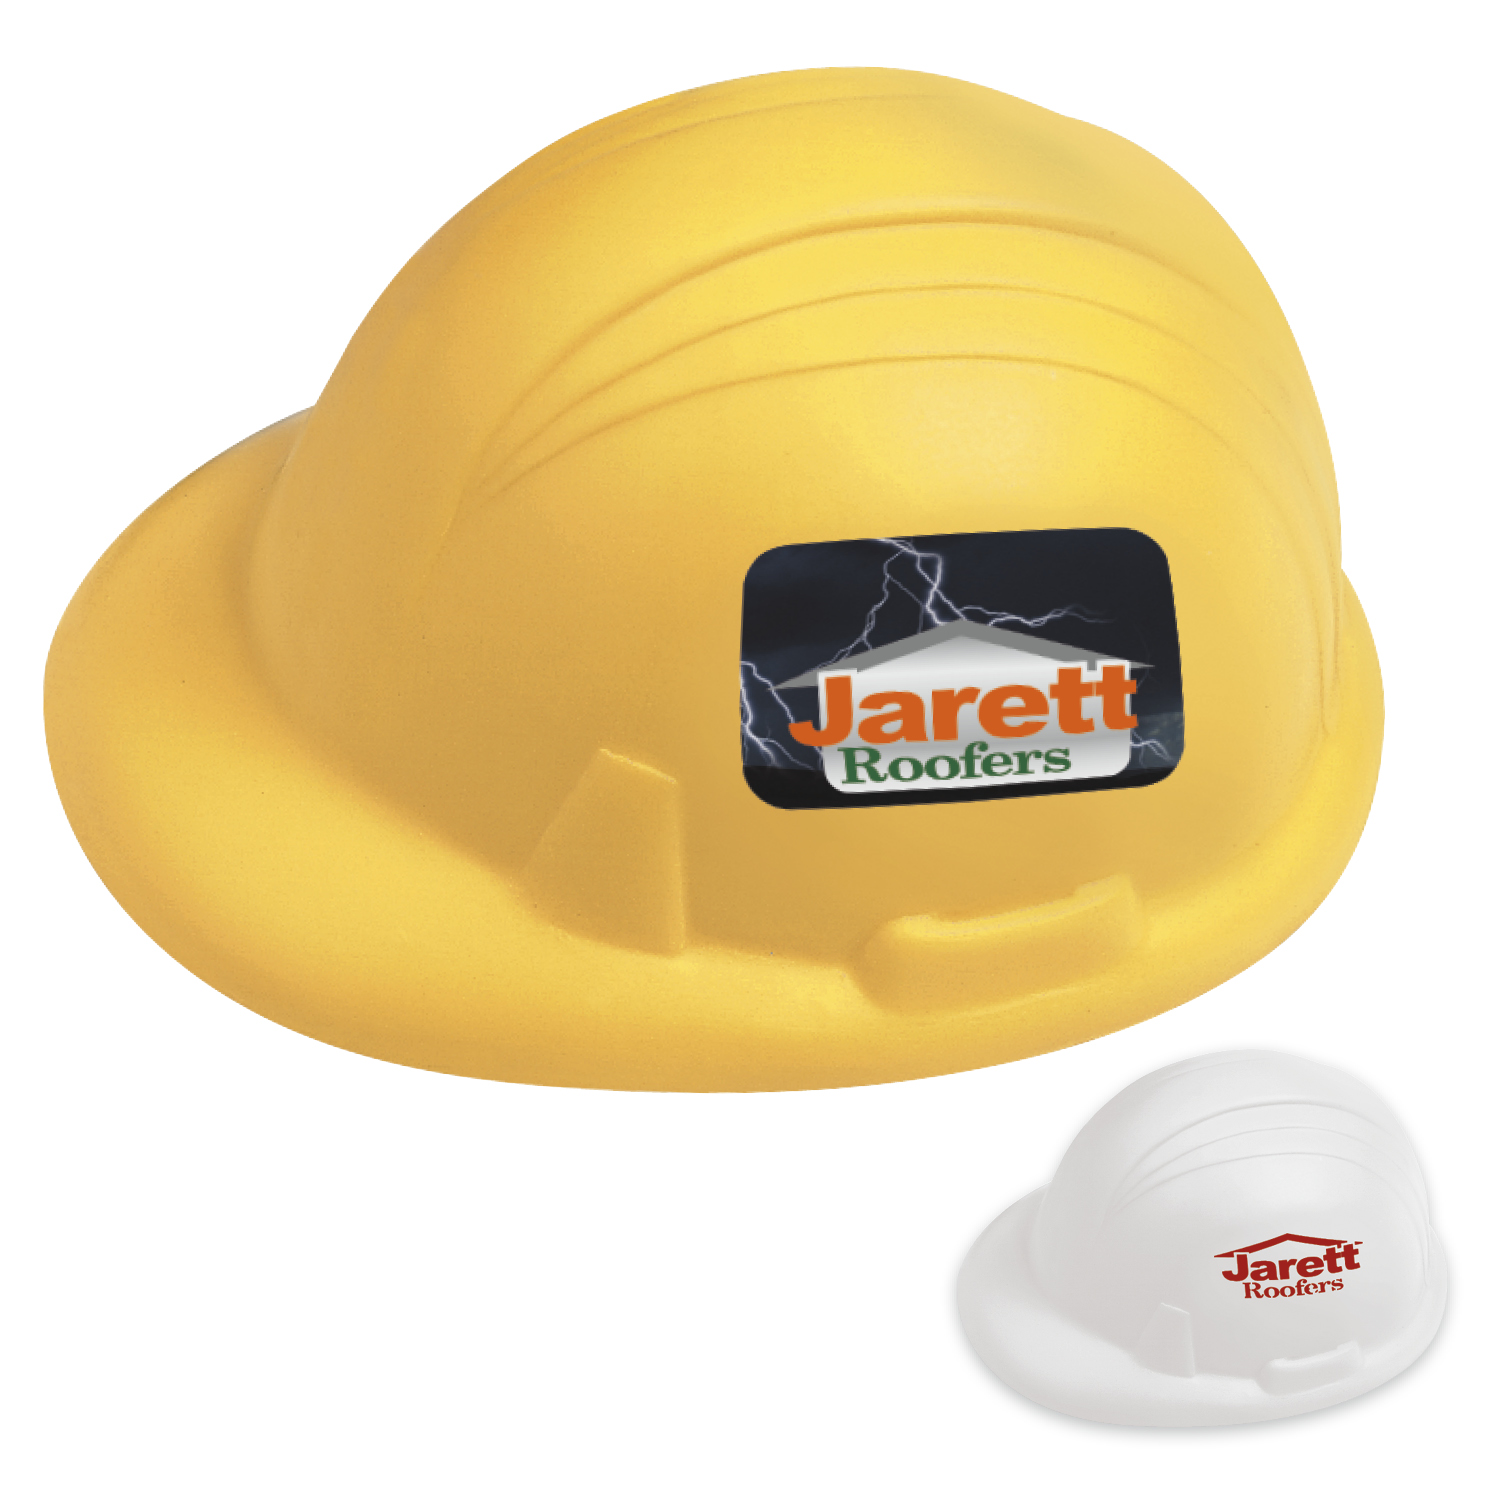 Hard Hat Stress Ball - 1 Colour Imprint, #40322